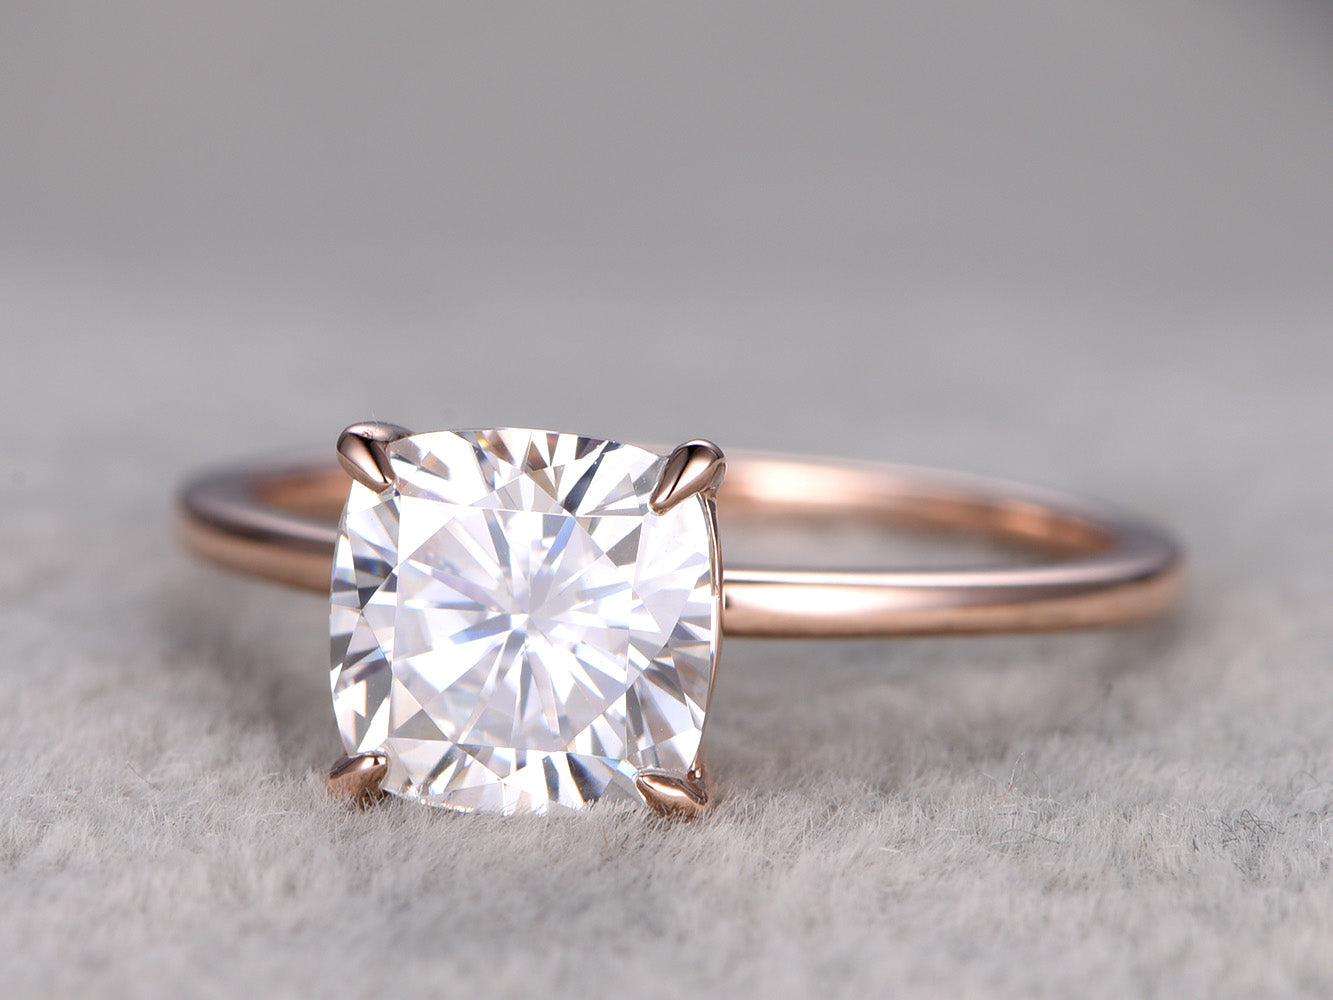 Moissanite engagement ring 6.5mm cushion cut moissanite with solid 14k rose gold plain gold band